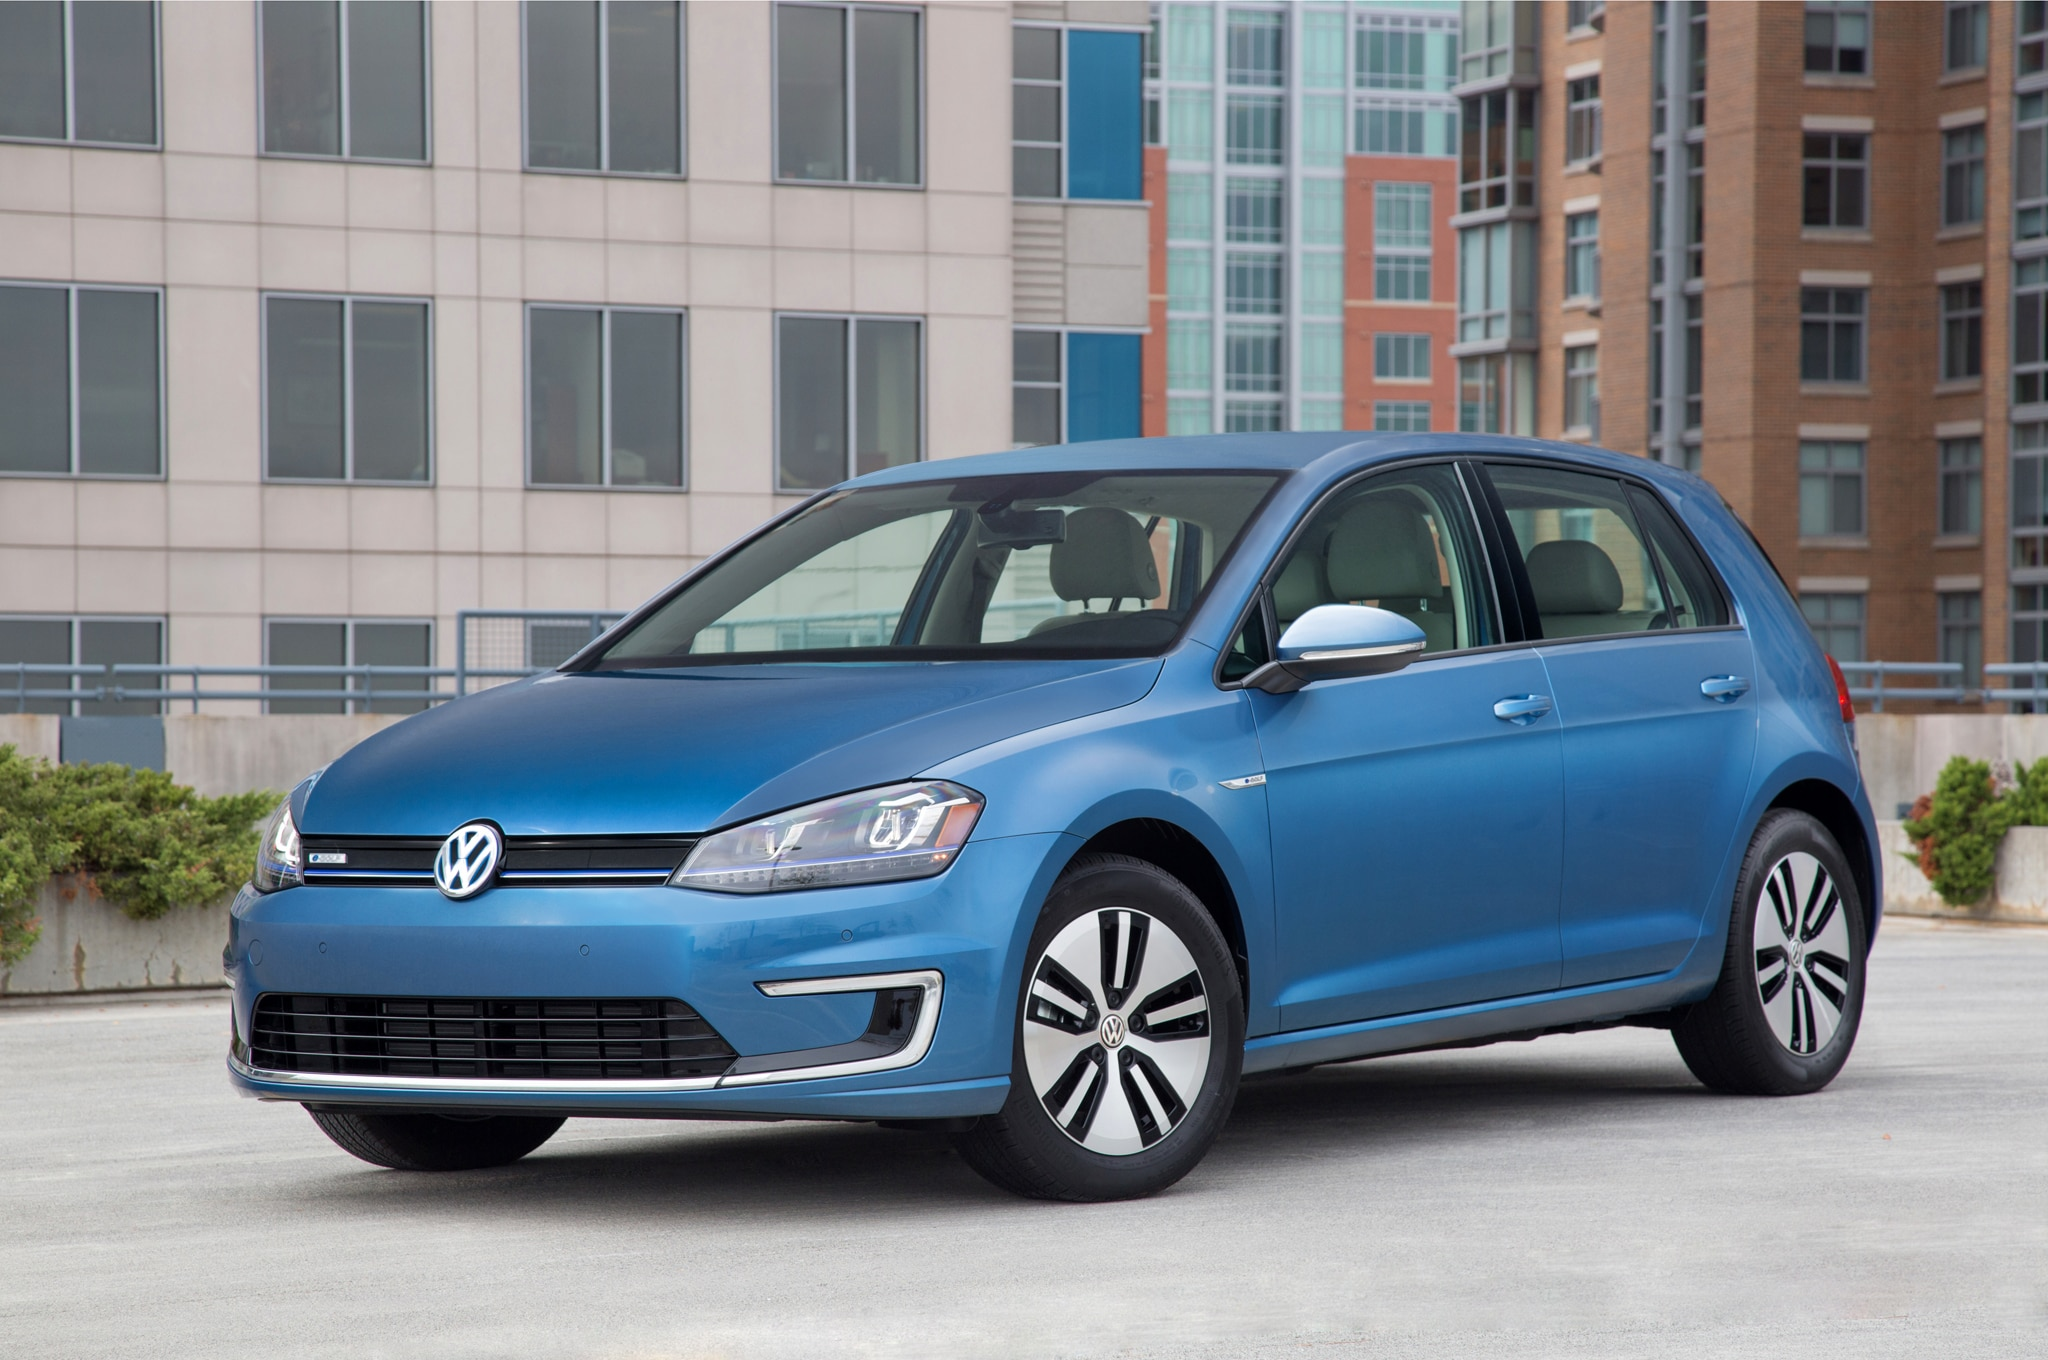 2015 volkswagen e golf gets 1 995 price cut with new trim level. Black Bedroom Furniture Sets. Home Design Ideas